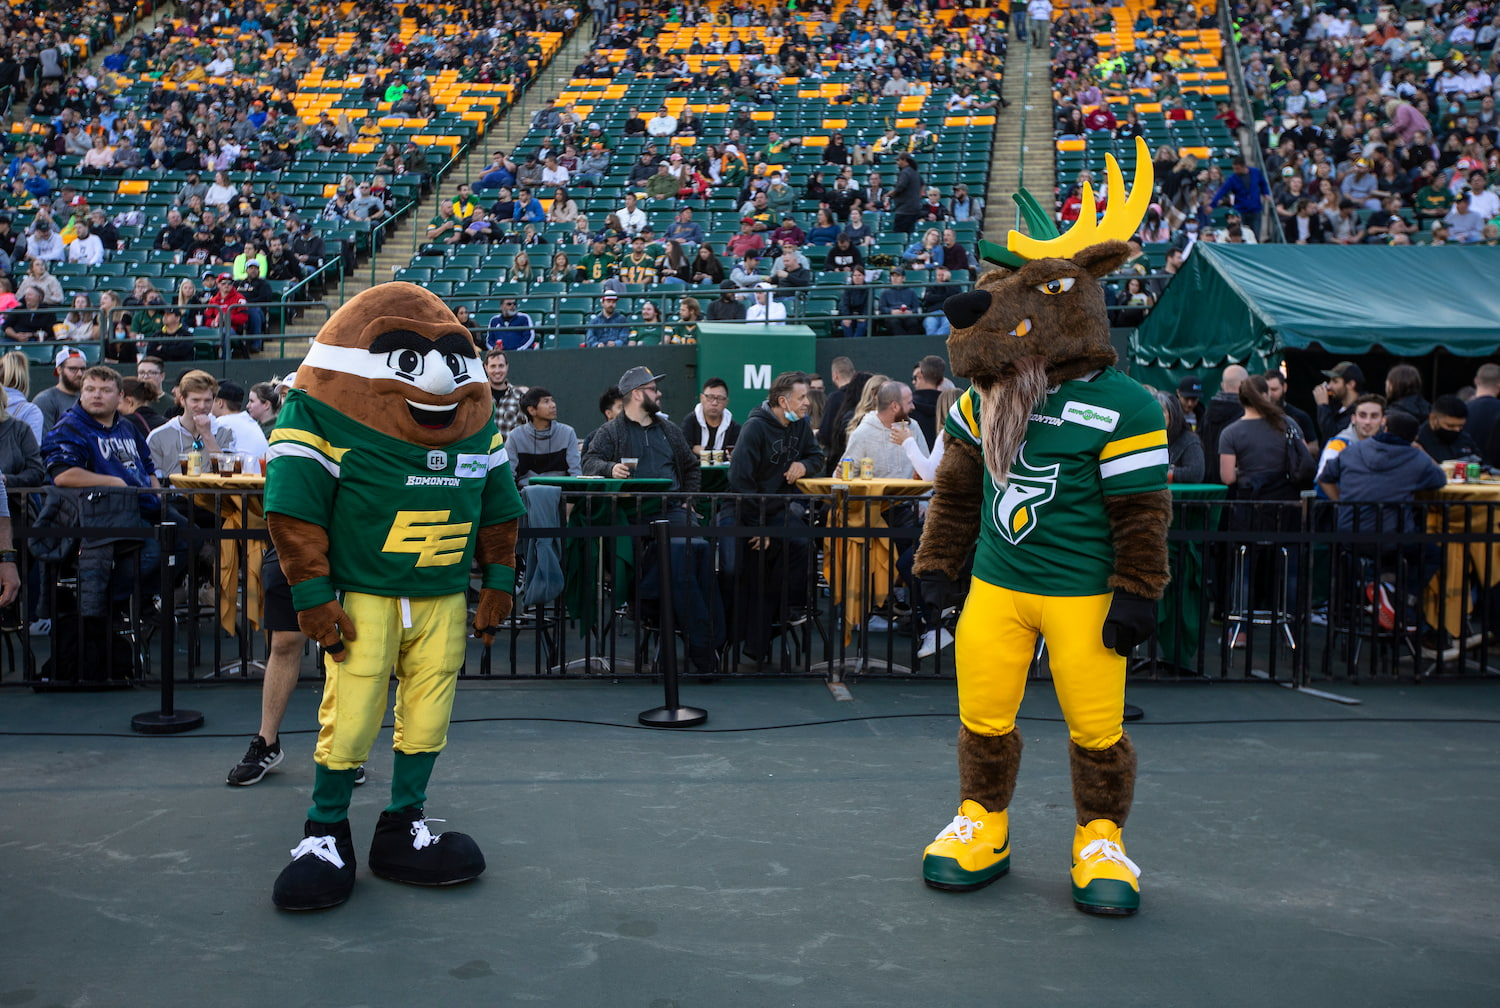 The old Edmonton mascot, Punter, stands with the new mascot, Spike the Elk, at a game in September.